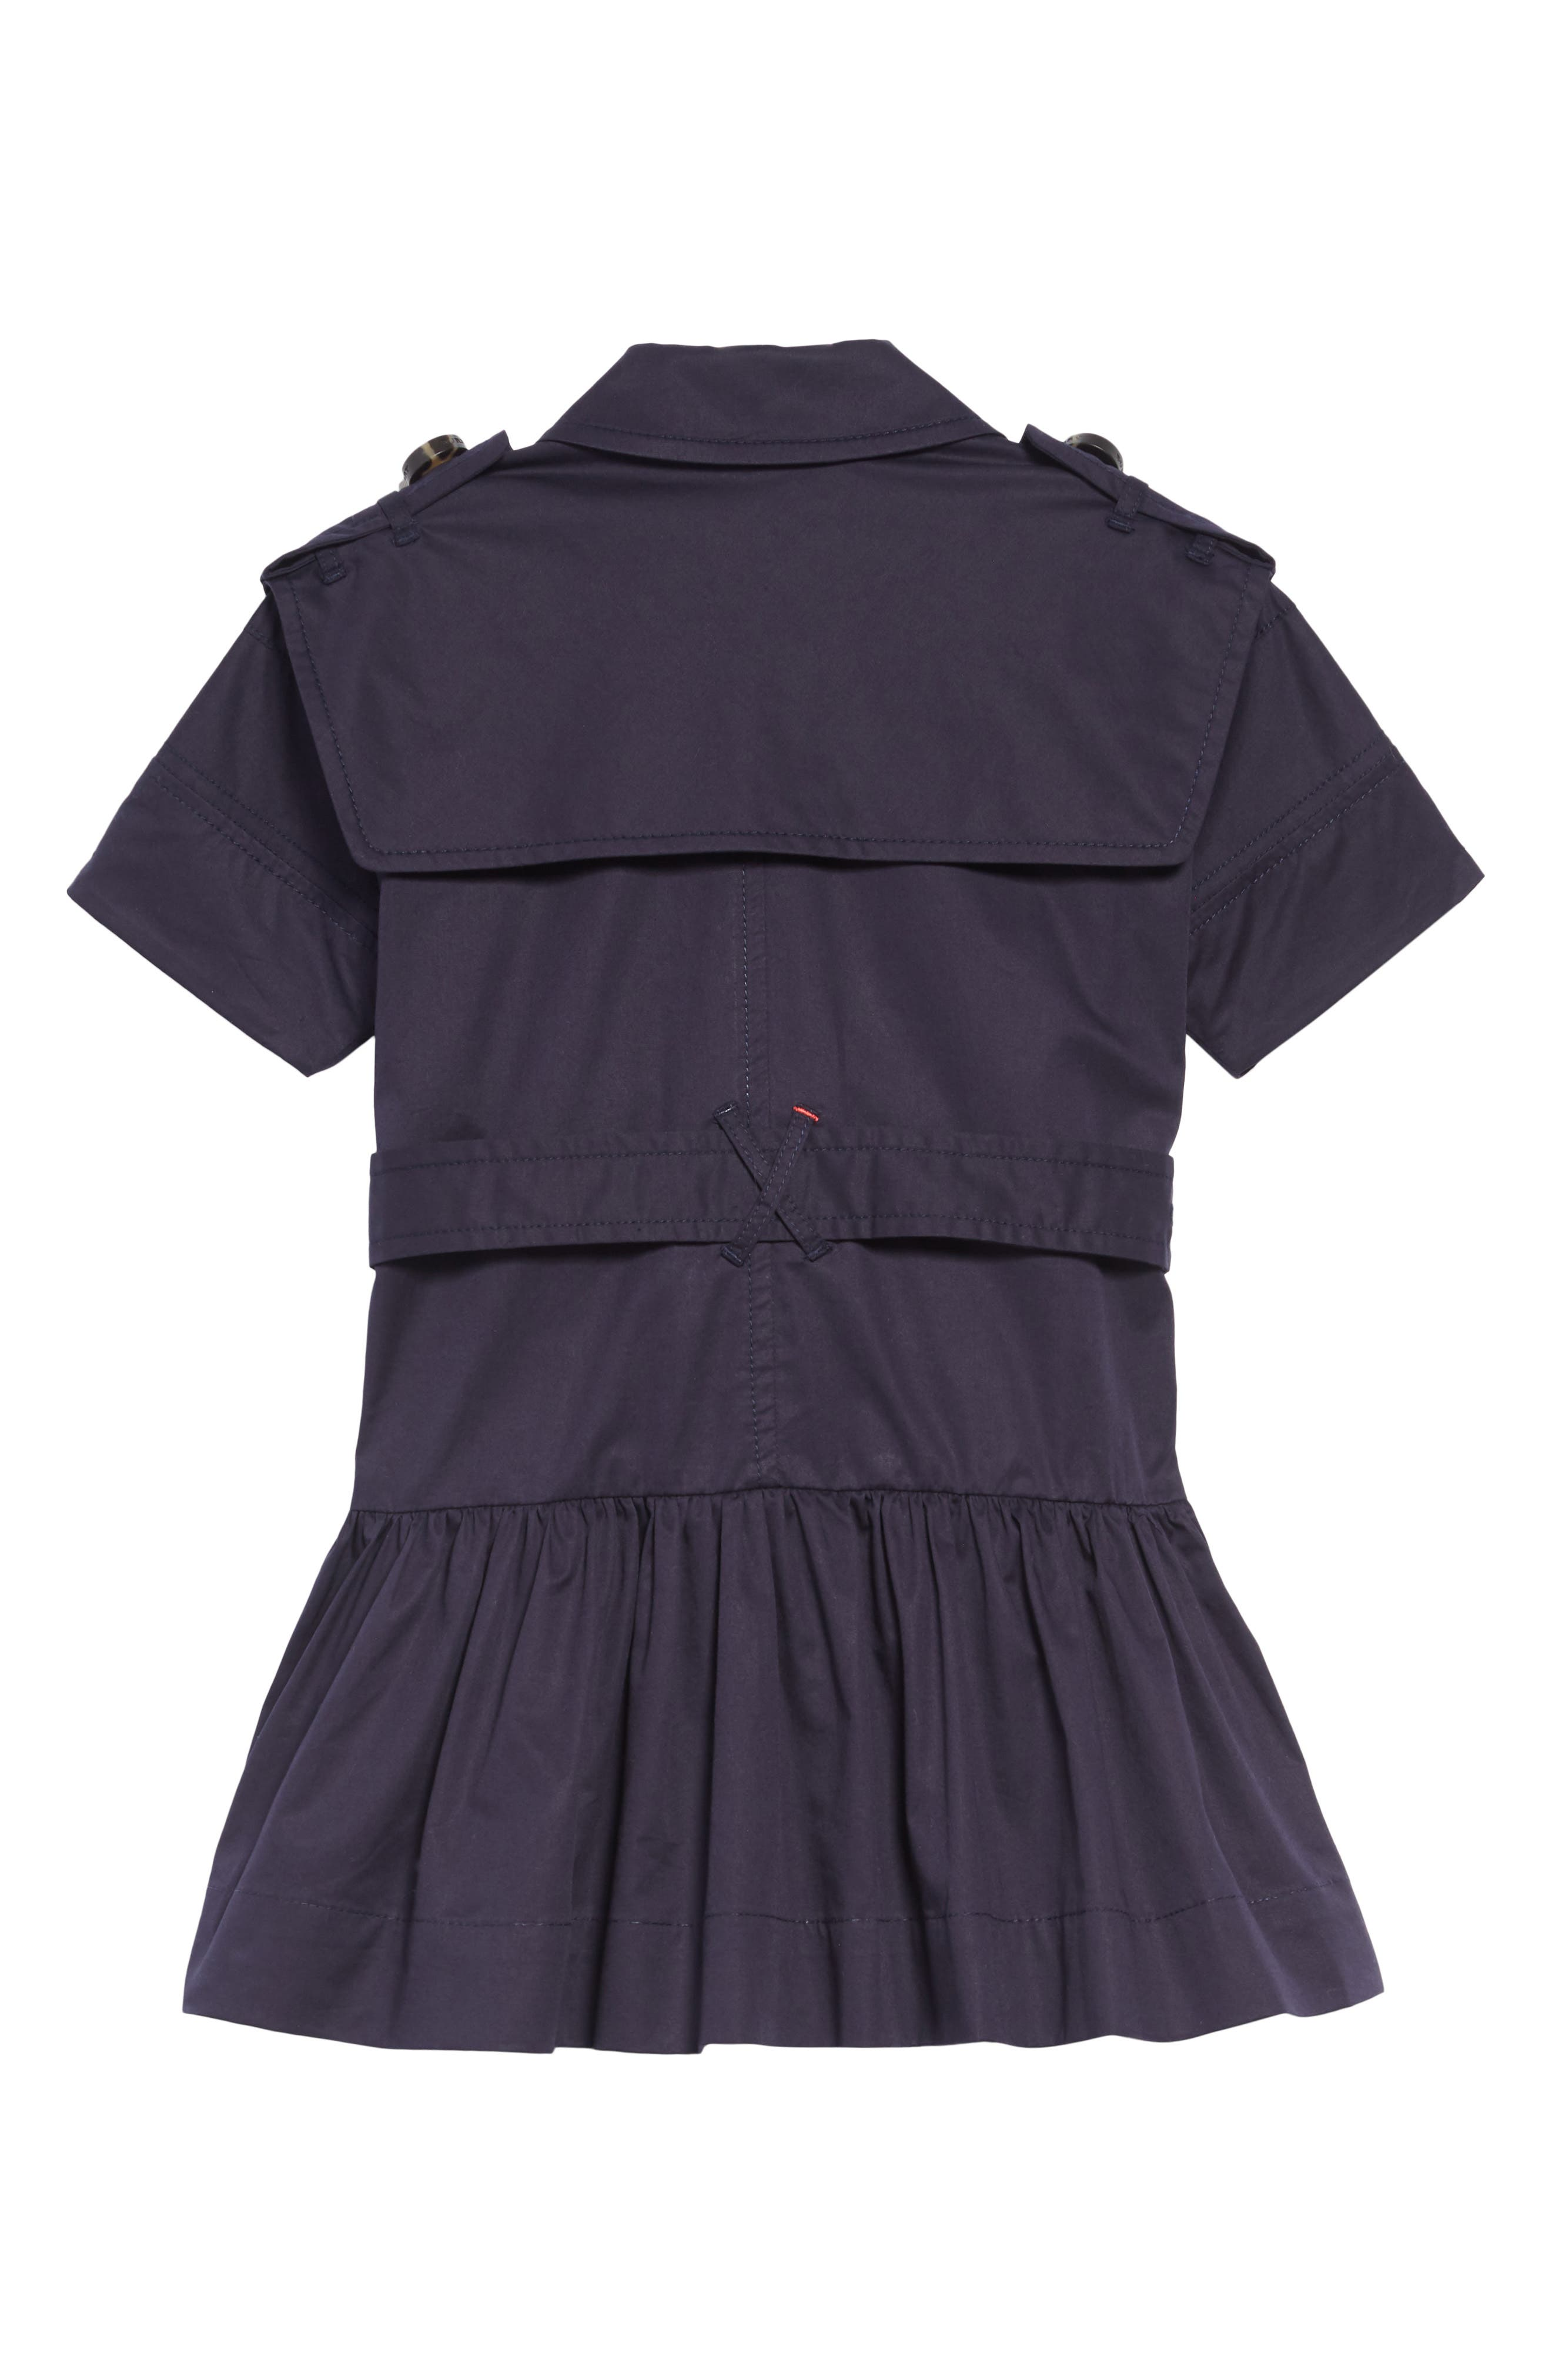 BURBERRY, Cynthie Stretch Cotton Trench Dress, Alternate thumbnail 2, color, MIDNIGHT